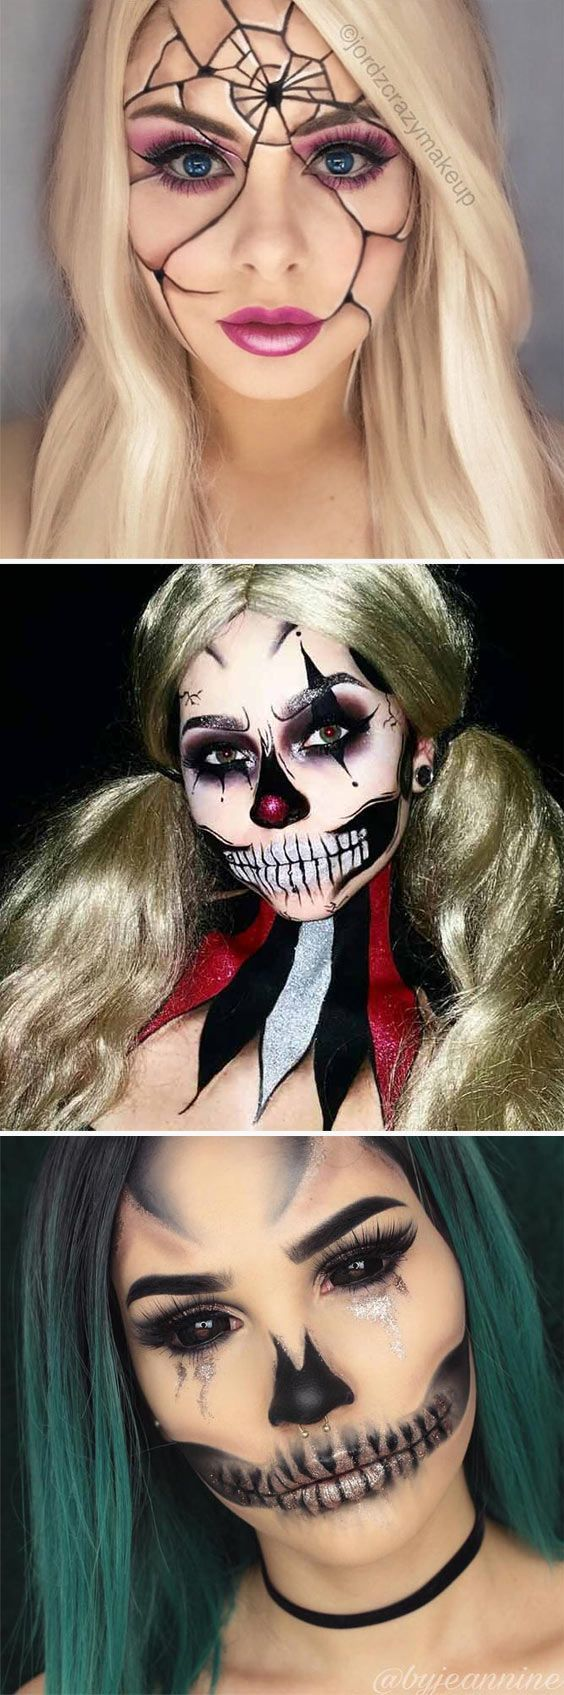 21 super scary halloween makeup looks | scary halloween makeup